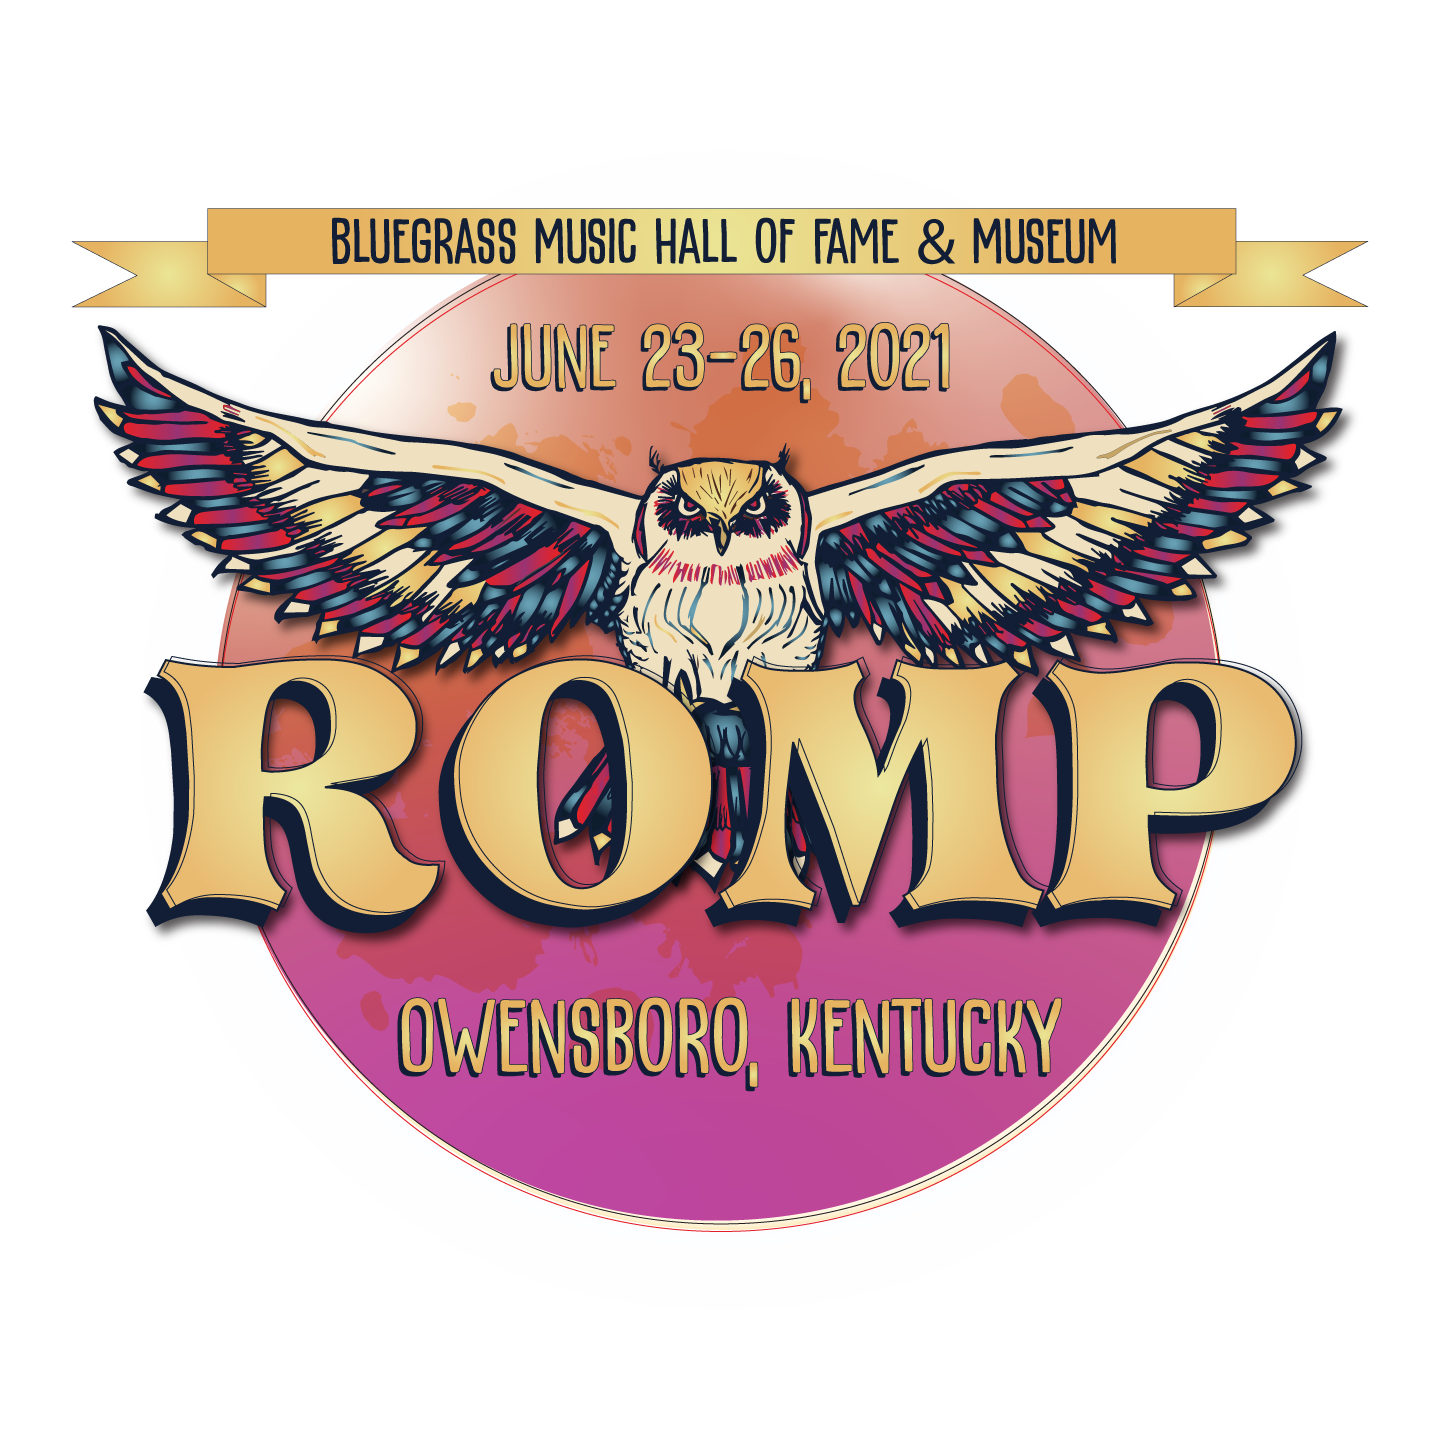 2021 ROMP - Bluegrass Roots and Branches Festival